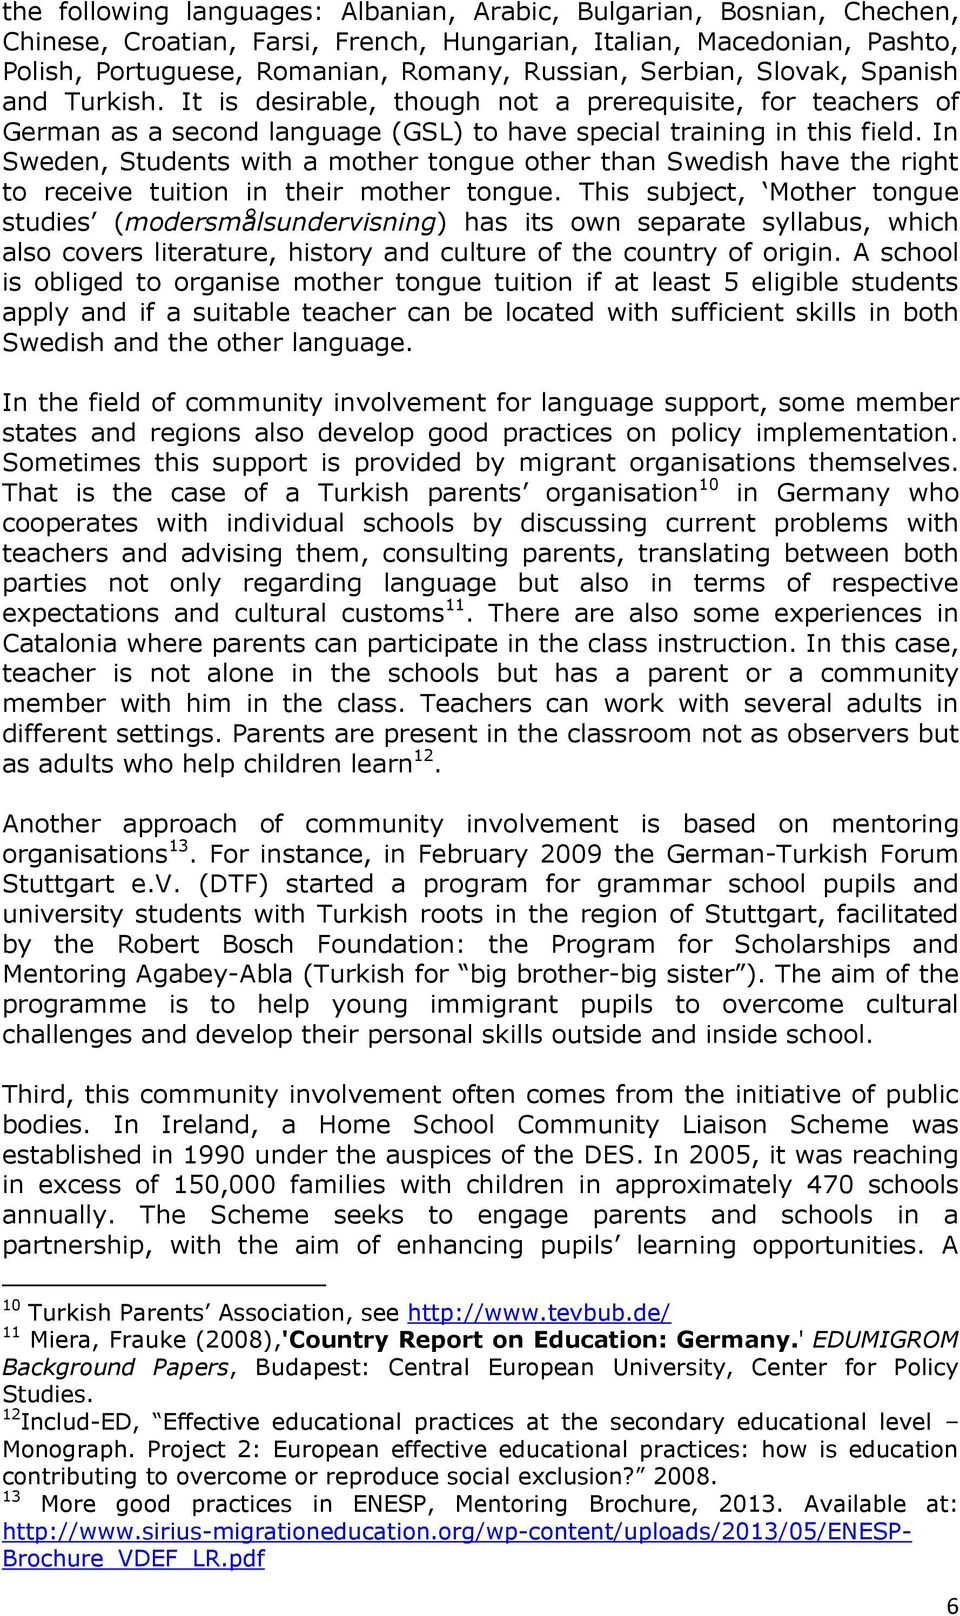 In Sweden, Students with a mother tongue other than Swedish have the right to receive tuition in their mother tongue.